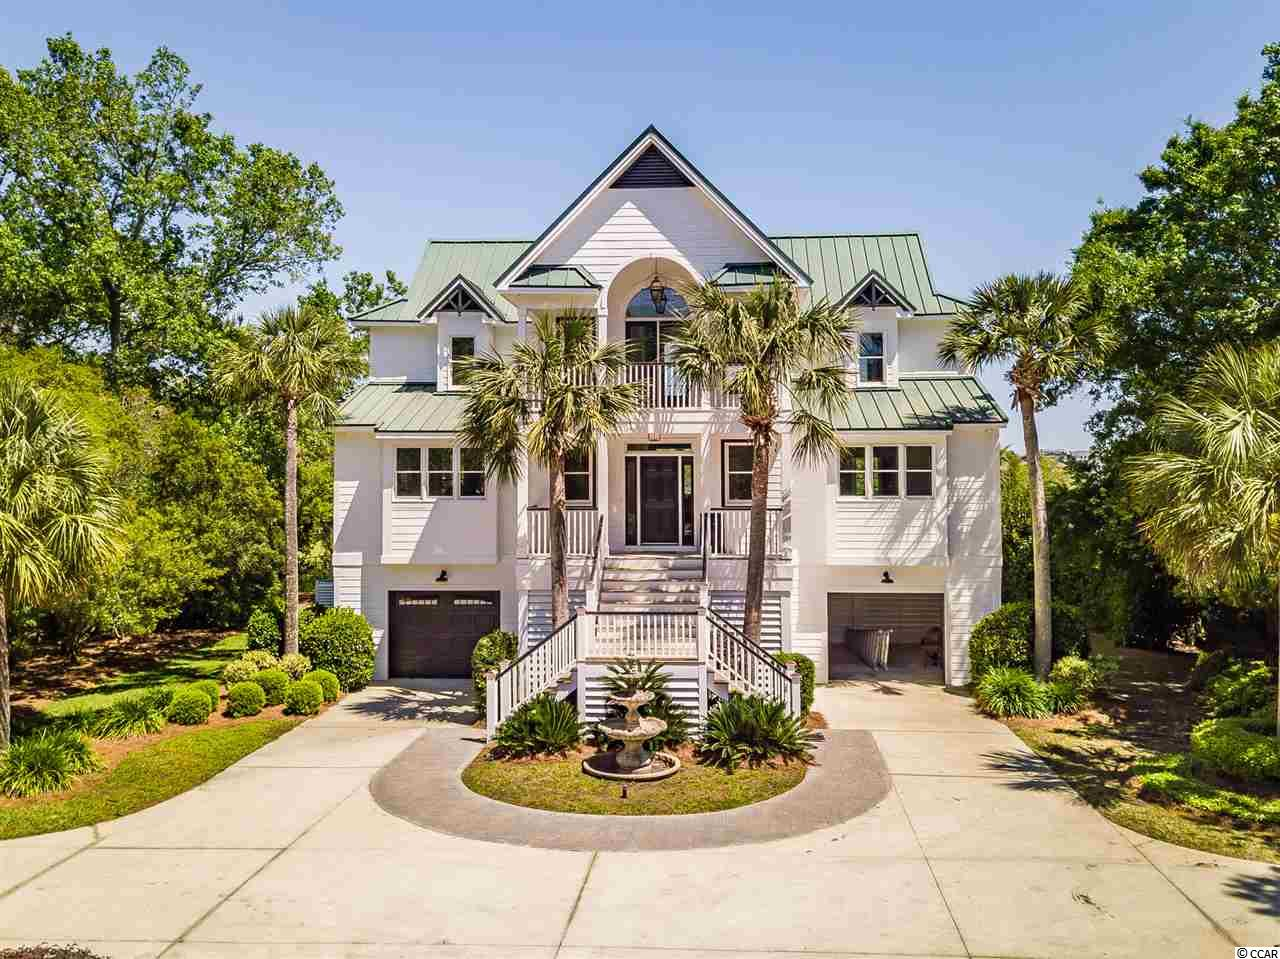 """Every once in a while a home and property comes on the market that perfectly describes Lowcountry Living & the Pawleys Island Lifestyle!  Are you an Avid Fisherman or boating enthusiast who wants access to both creek & deep water? Maybe your perfect morning includes sipping a cup of coffee from a rocker on the porch as you enjoy the sounds of all the surrounding wildlife. Enjoy a morning run or bike ride to the beach just 3 min from home. Experience Breathtaking Sunrises and Sunsets from the dock or porch areas daily! Water sports like paddleboarding, throwing a cast net, surfing, kayaking, & crabbing await ! Location is Everything & your piece of Heaven is tucked away on a peaceful and private setting just a short golf cart ride to the Beach & everything in Pawleys!  If you love great food Chive Blossom & Franks; two of Pawleys Island's best eateries, are a 1 min. walk from your home!  Welcome to 196 March Lane; affectionately known as """"Up the Creek"""" Nestled among Moss draped Live Oaks & airy Palms you will be so impressed as you enter the majestic Stone Wall & Iron Gated & Gas Lantern Entrance leading to an awesome sweeping staircase & fronted by a gorgeous stone tiered fountain. The grounds surrounding this Custom Home are spectacular! This estate sized 1 acre lot begs you to explore the creek! The Owner has spared no expense with a New Walk-out & dock constructed by C- Way; a local dock expert. Fish and relax at the Covered Dock as you make everlasting memories. The dock has a floater & there's nothing better than jumping onto your awaiting boat for a morning or evening cruise. Anglers will love fishing the creek, & just a two minute boat ride through the north end for some offshore adventures. No bridge to go under from your creek home. The front and rear porches will beakon you at dawn and dusk! The Exterior of the home looks like the cover of a Better Homes & Gardens magazine complete with a spacious under home parking that has room for your Golf Cart & all y"""